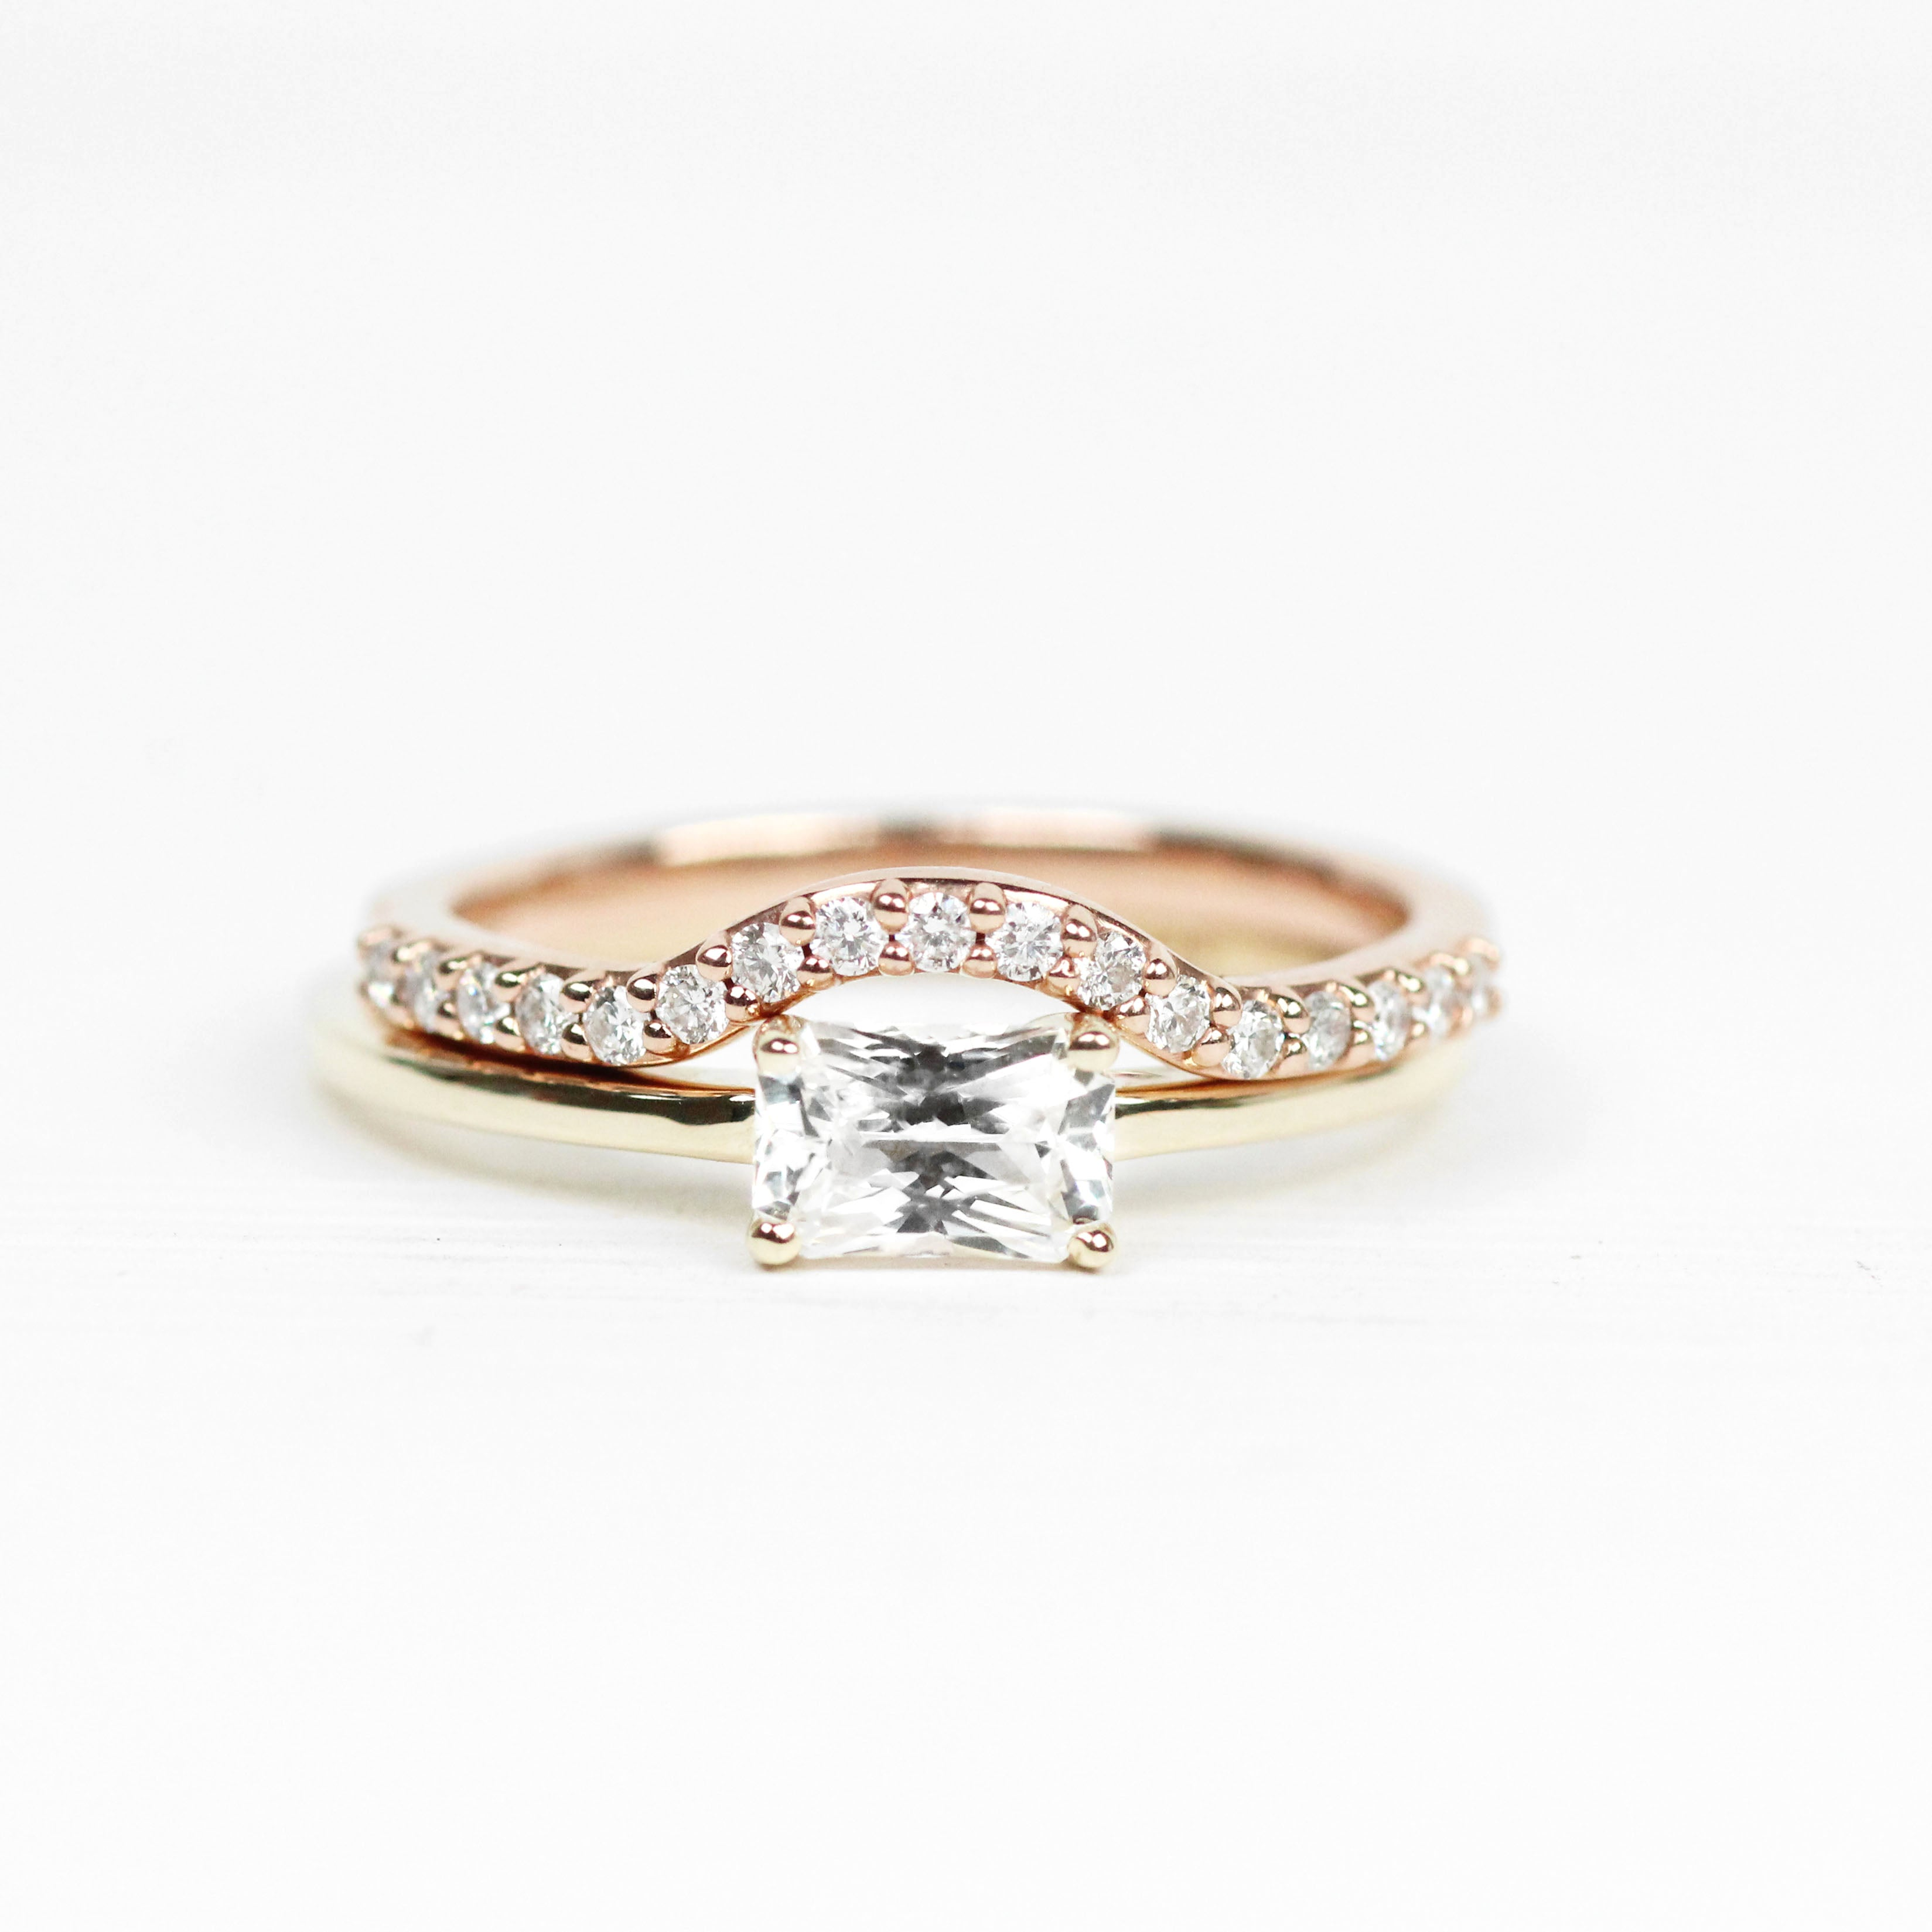 Ruthie Ring with White Sapphire - Your choice of metal - Custom - Salt & Pepper Celestial Diamond Engagement Rings and Wedding Bands  by Midwinter Co.